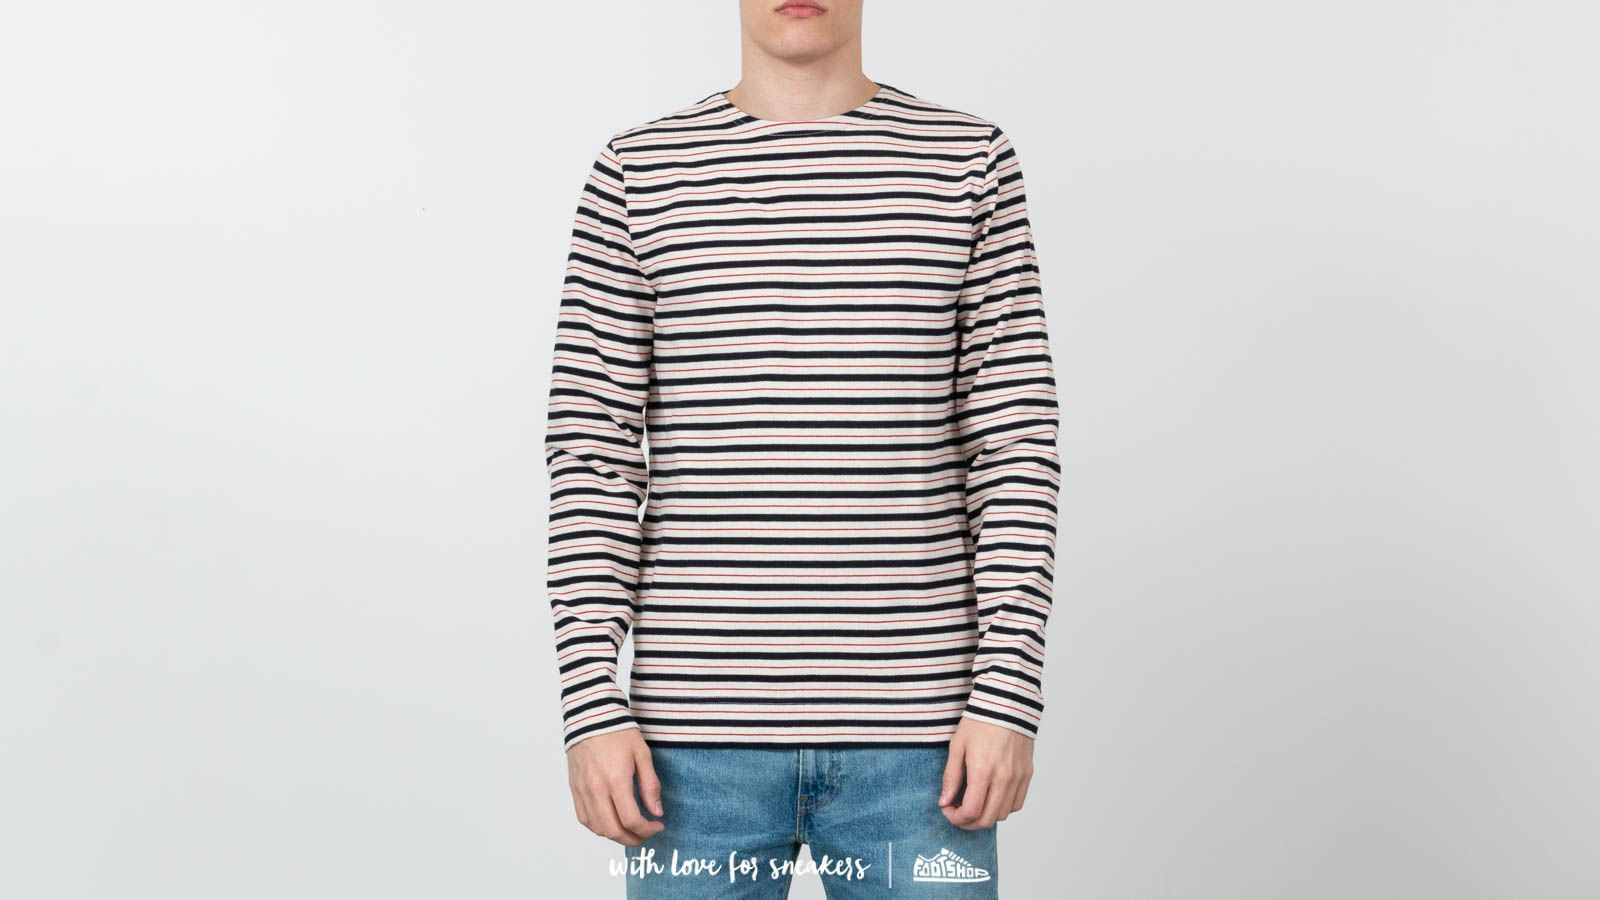 Norse Projects Godtfred Classic Compact Longsleeve Tee